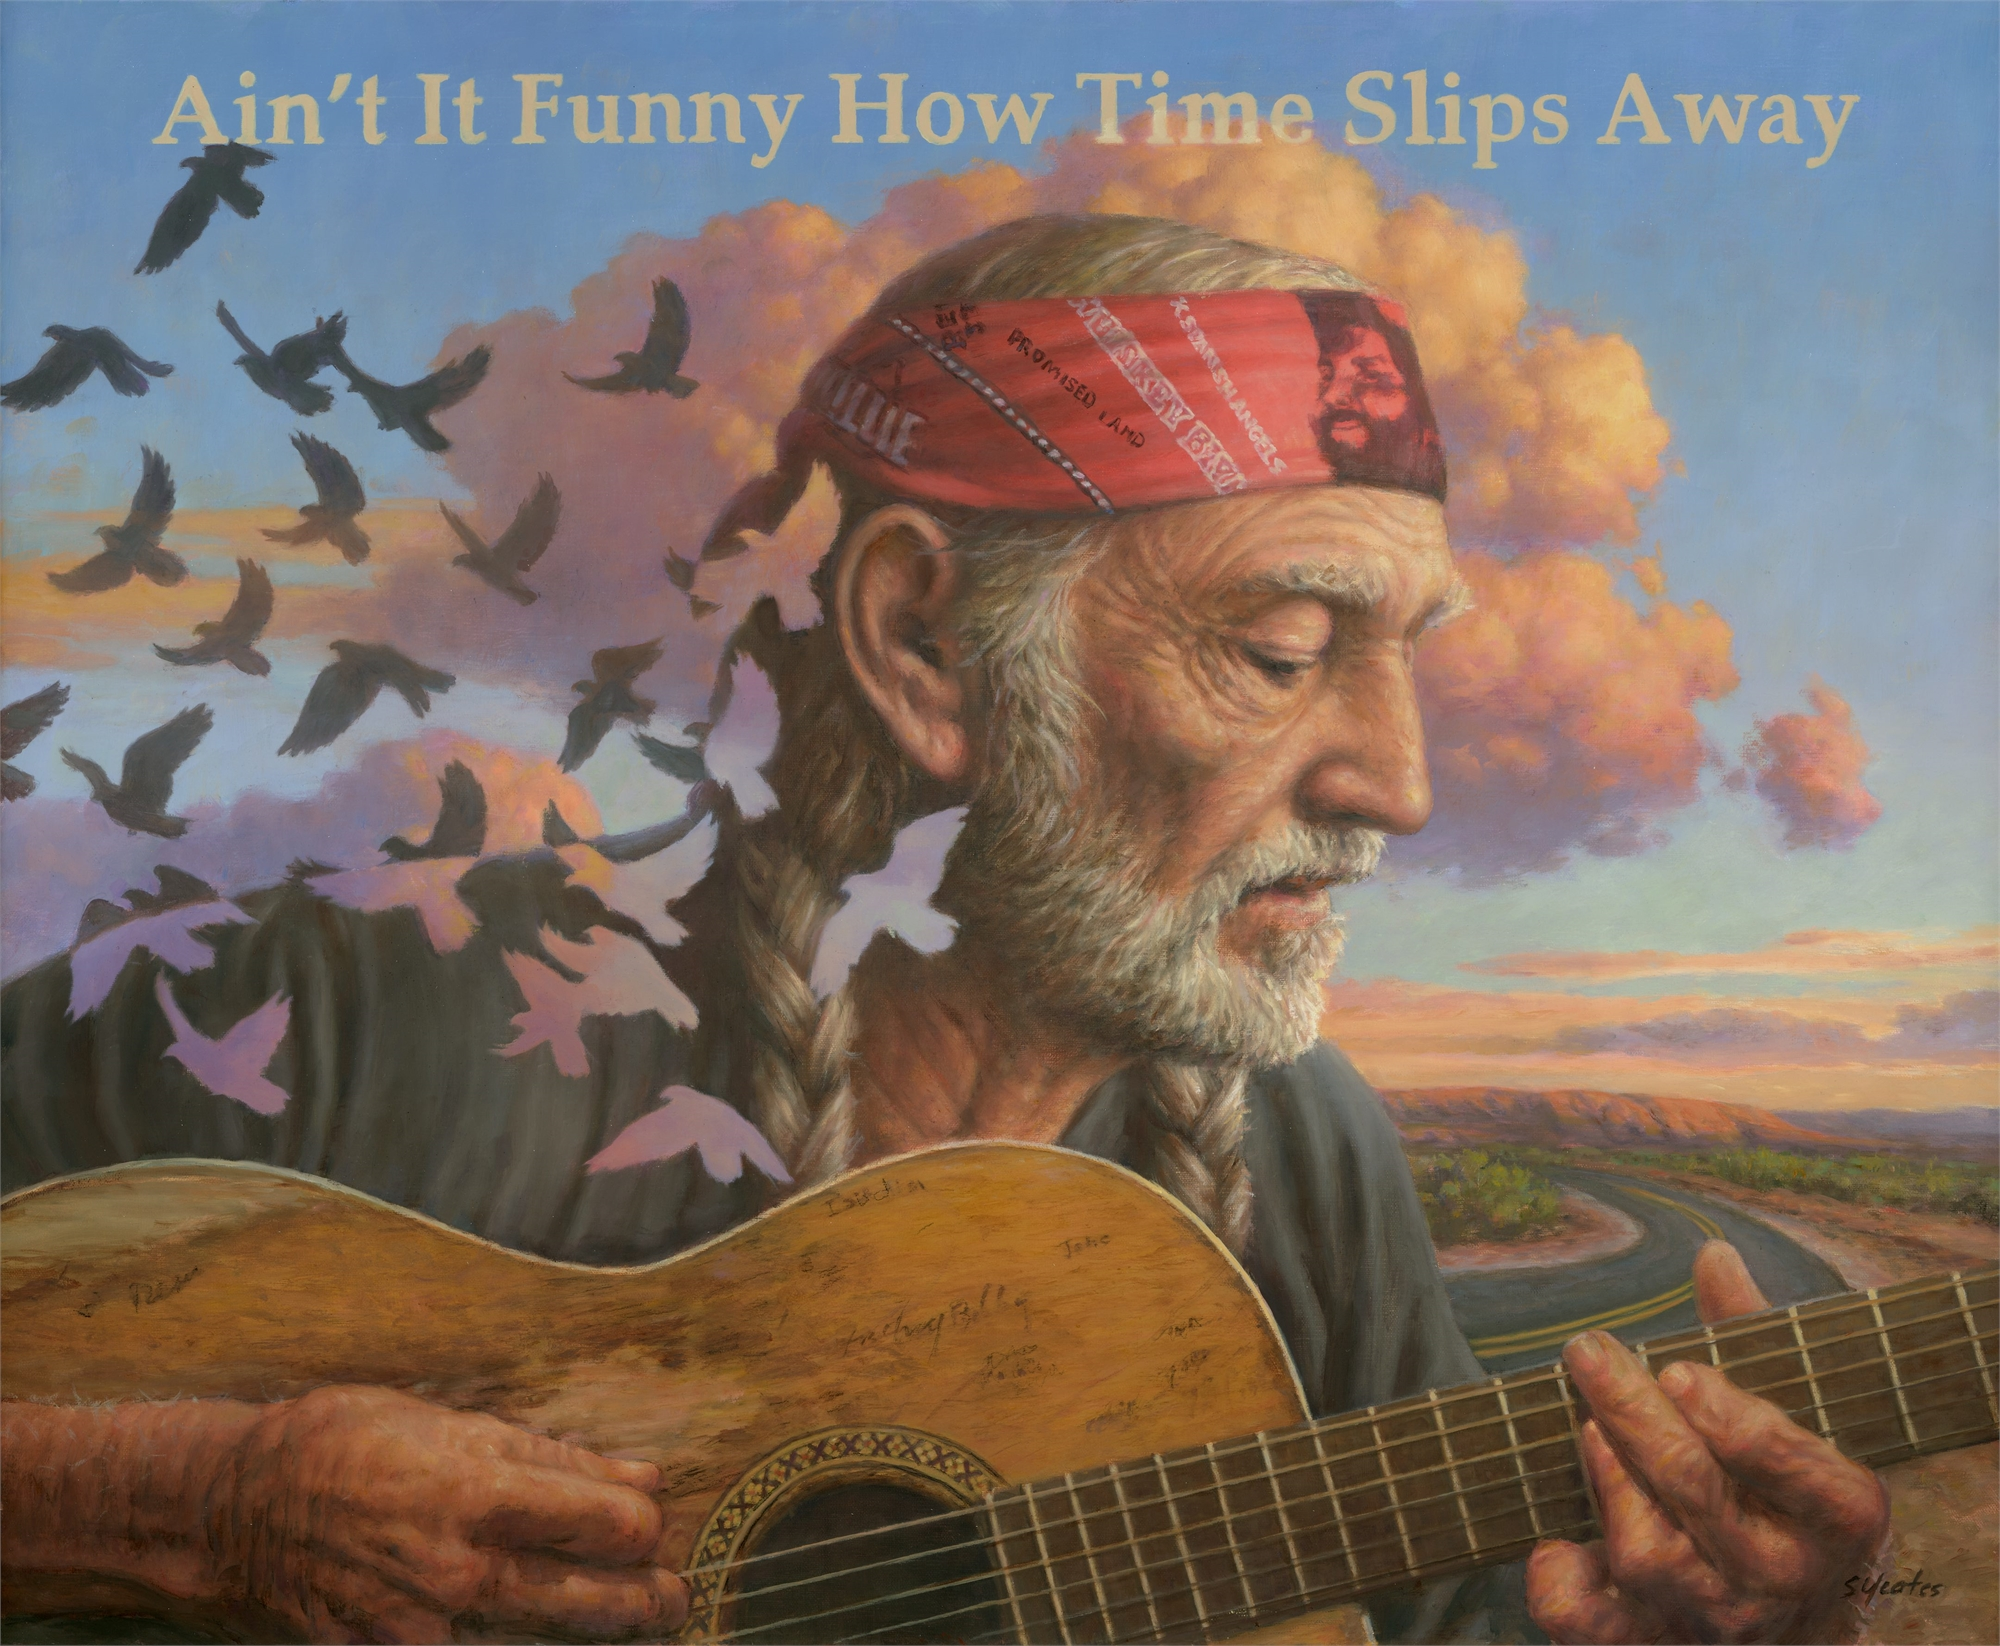 Ain't It Funny How Time Slips Away by Sam Yeates